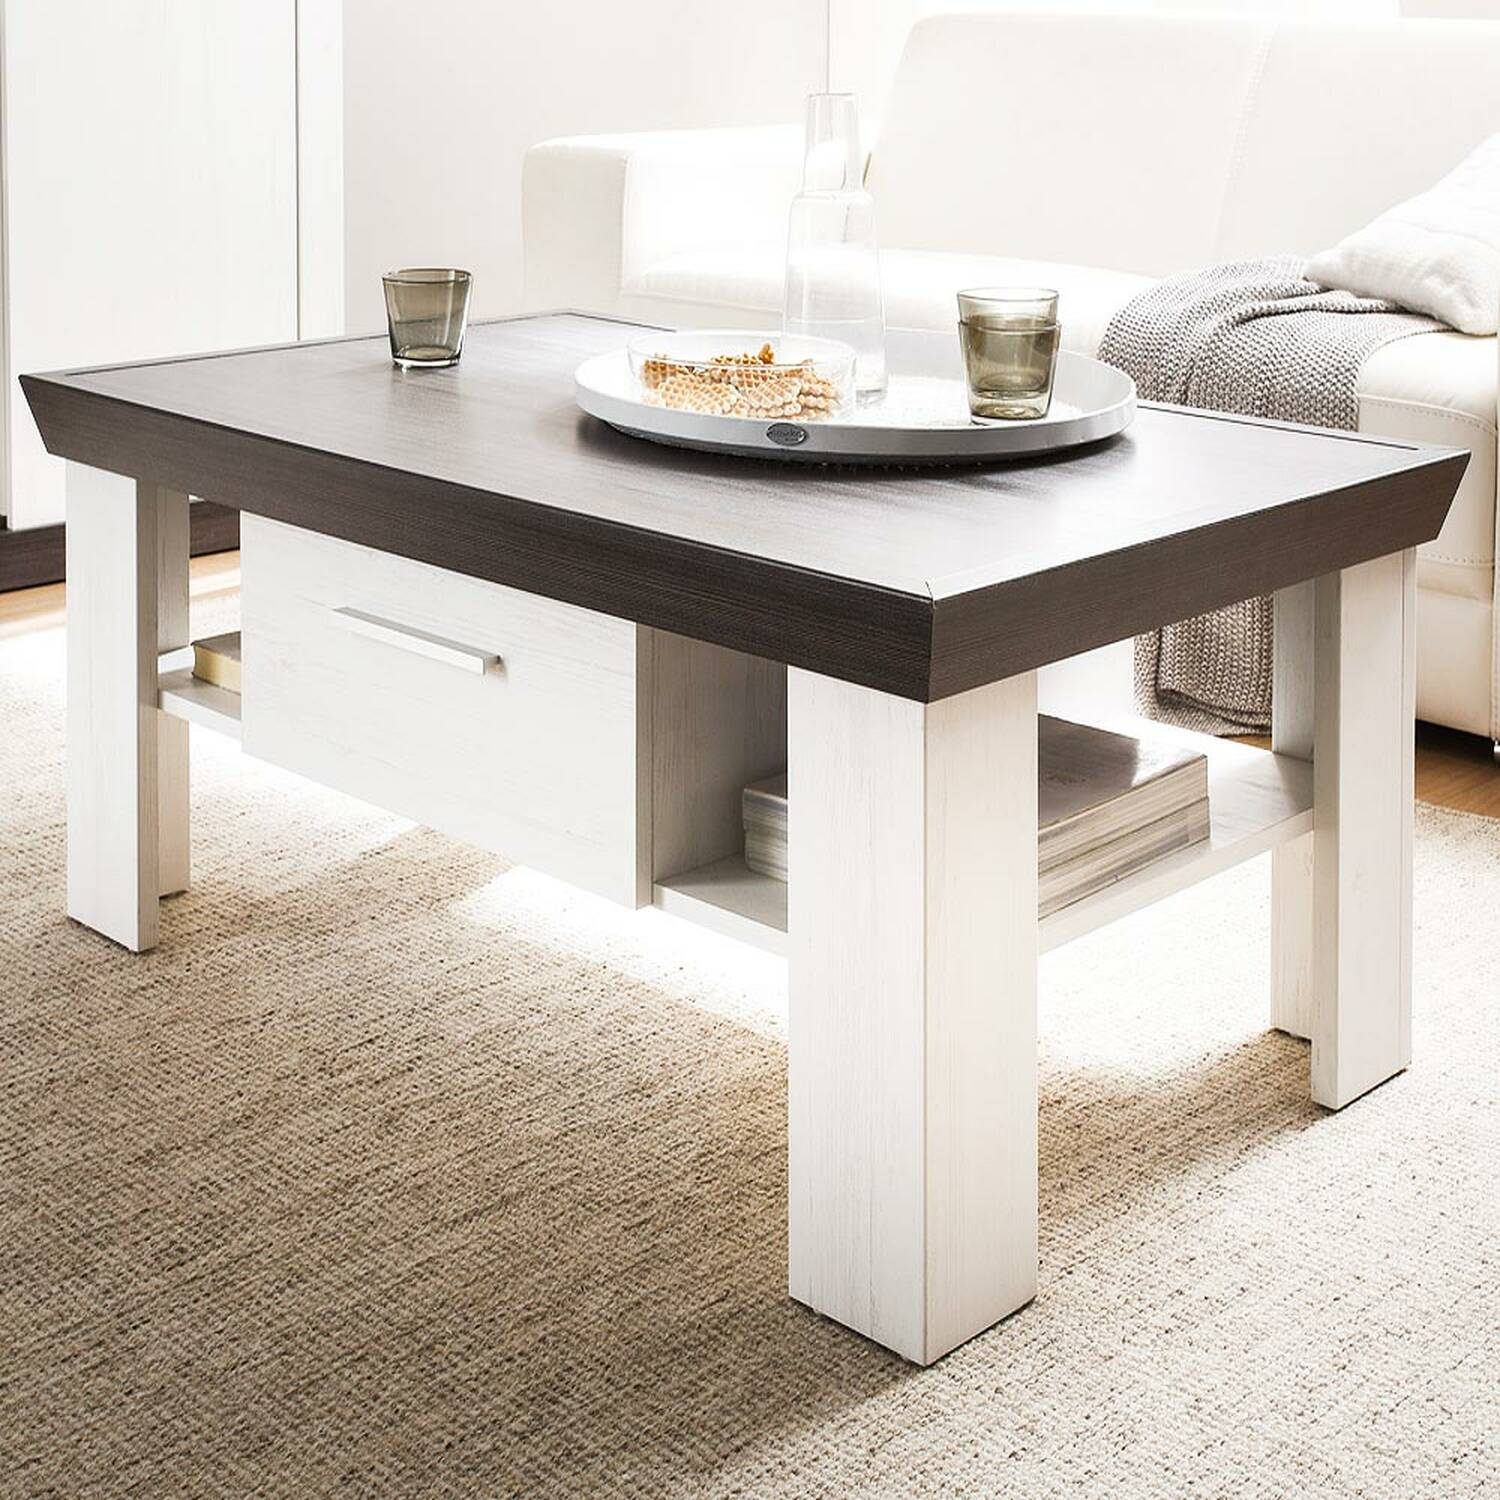 - Coffee Table In Country House Style Pine White Nb. SALARA-61 W/H/D App